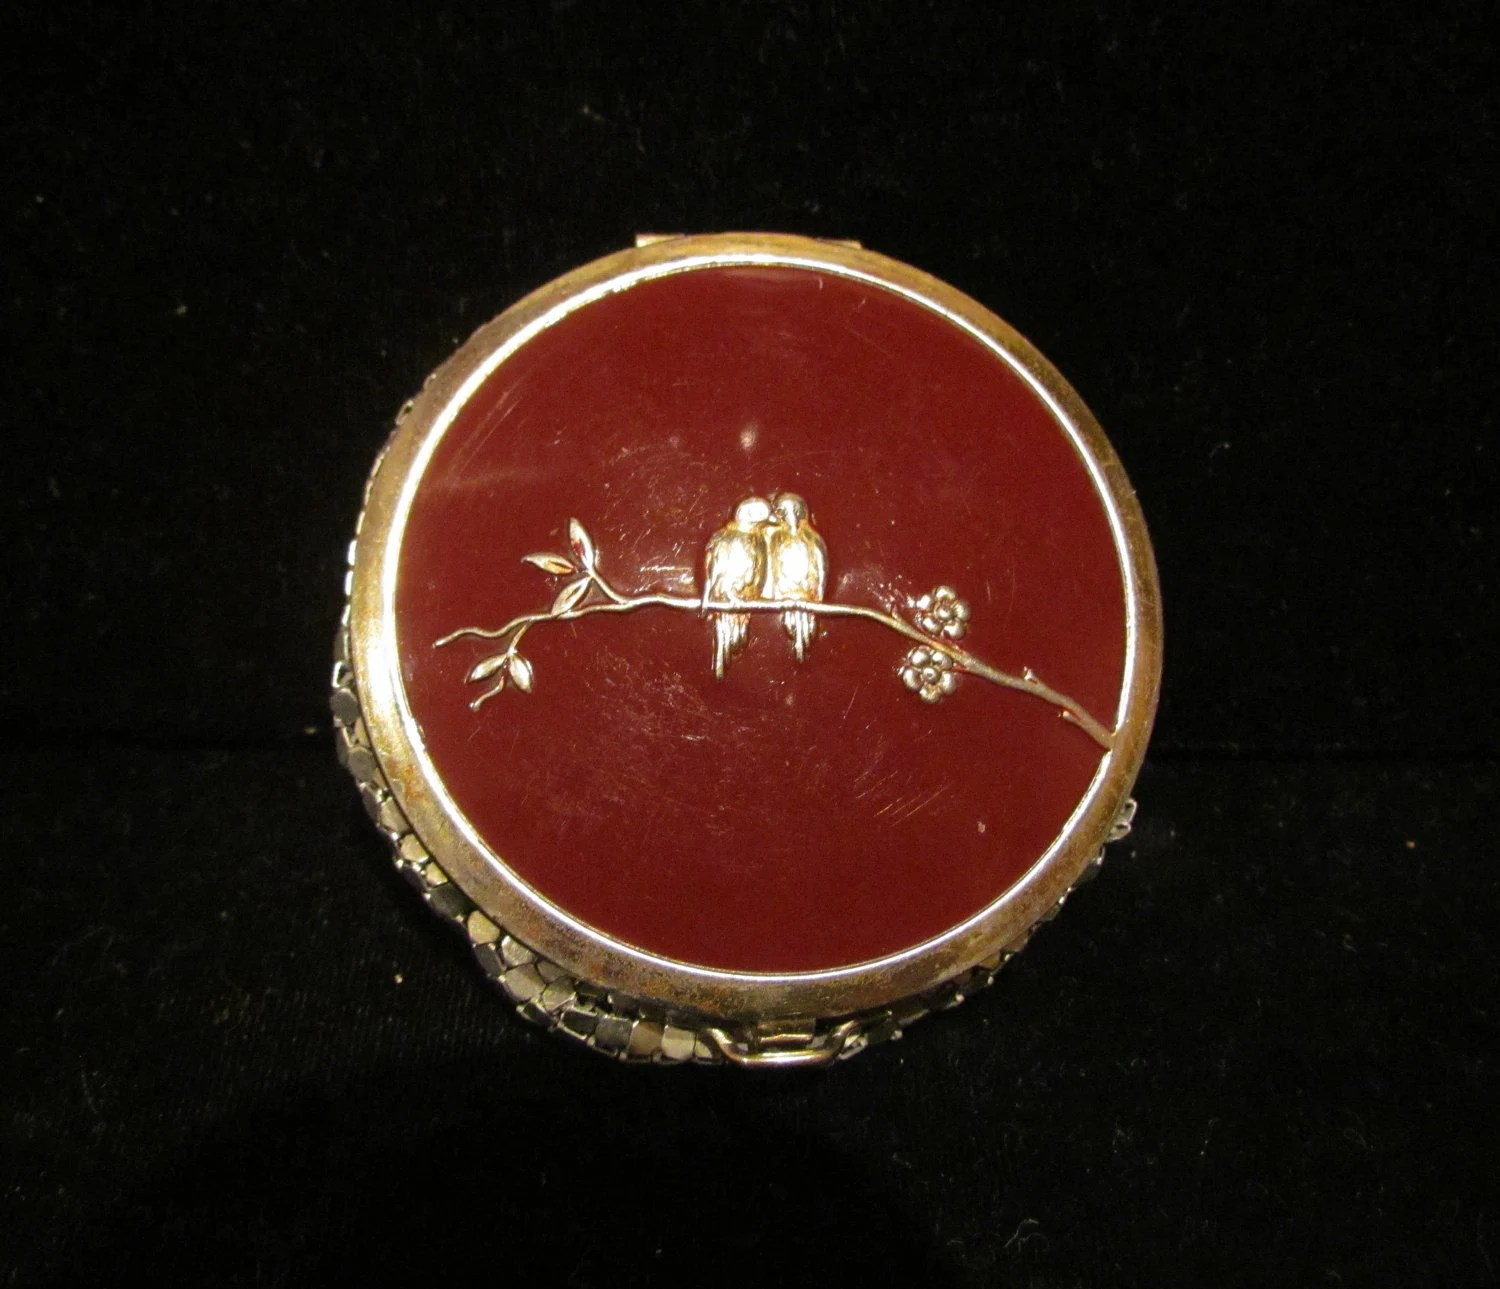 Vintage Evans Compact Silver Mesh Compact Enamel Compact Powder Compact Mirror Compact Lovebirds Compact